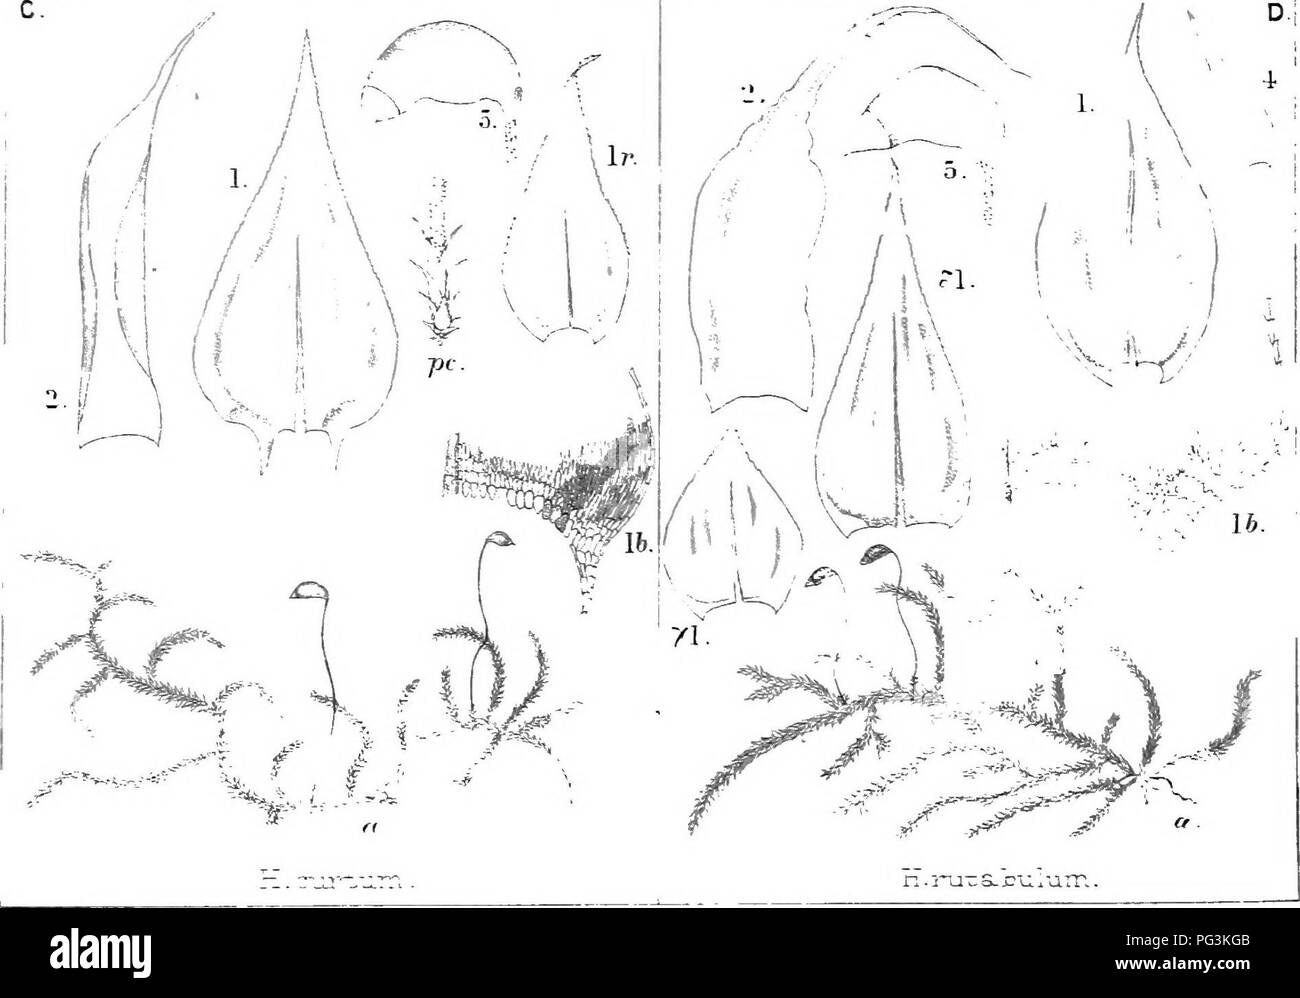 . The British moss-flora. Mosses. ri. caiTi'p e 5-i- e.. EBr^'irl,^^'i-7t(f tulrtnt dal^ KM.M!r,tern »c. Jfmbem. Brts i«p.. Please note that these images are extracted from scanned page images that may have been digitally enhanced for readability - coloration and appearance of these illustrations may not perfectly resemble the original work.. Braithwaite, Robert, 1824-1917. London - Stock Image